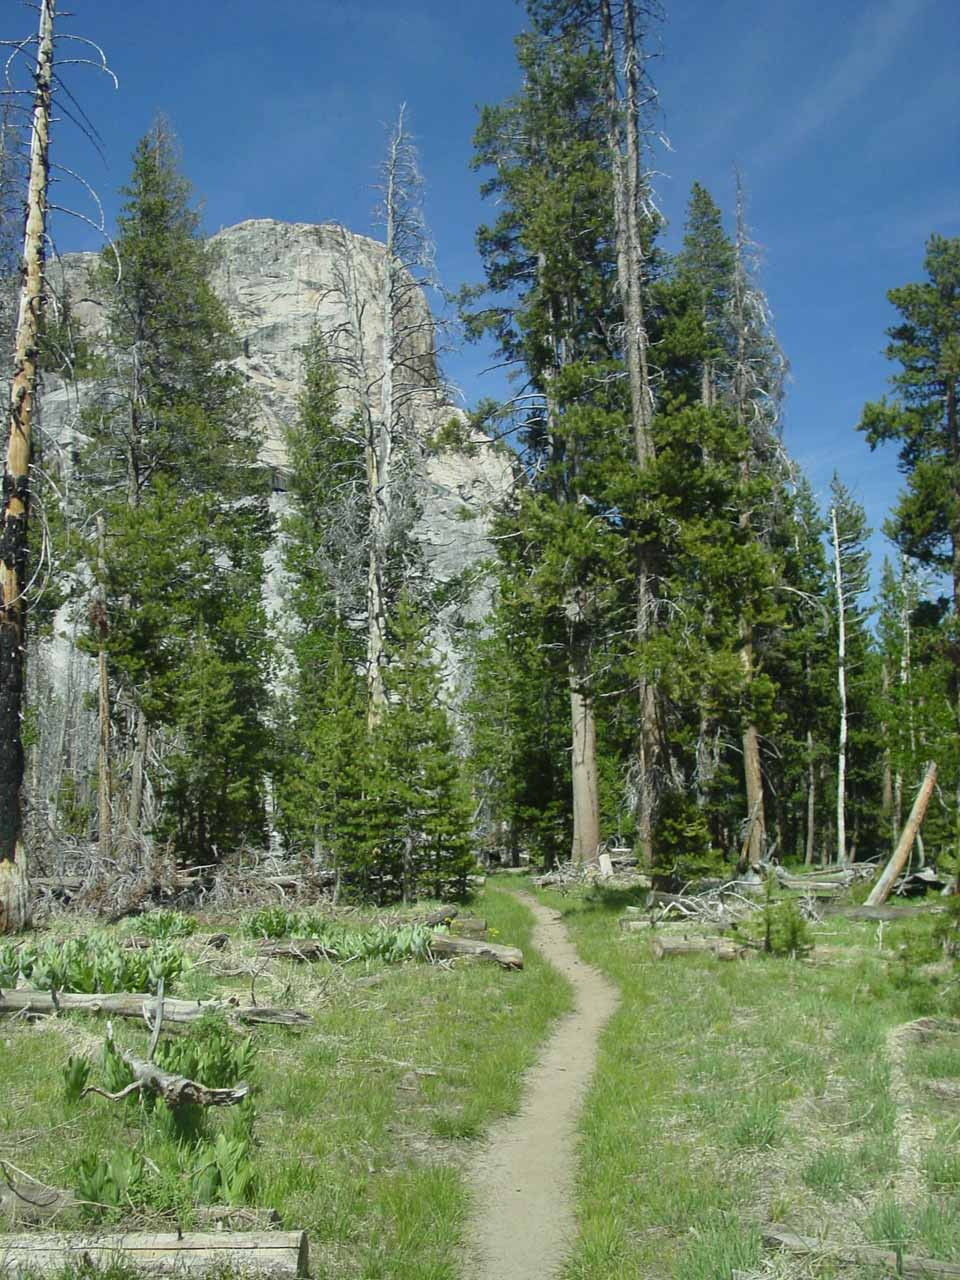 On the calm section of trail as we bypassed California Falls (having seen it the previous week)